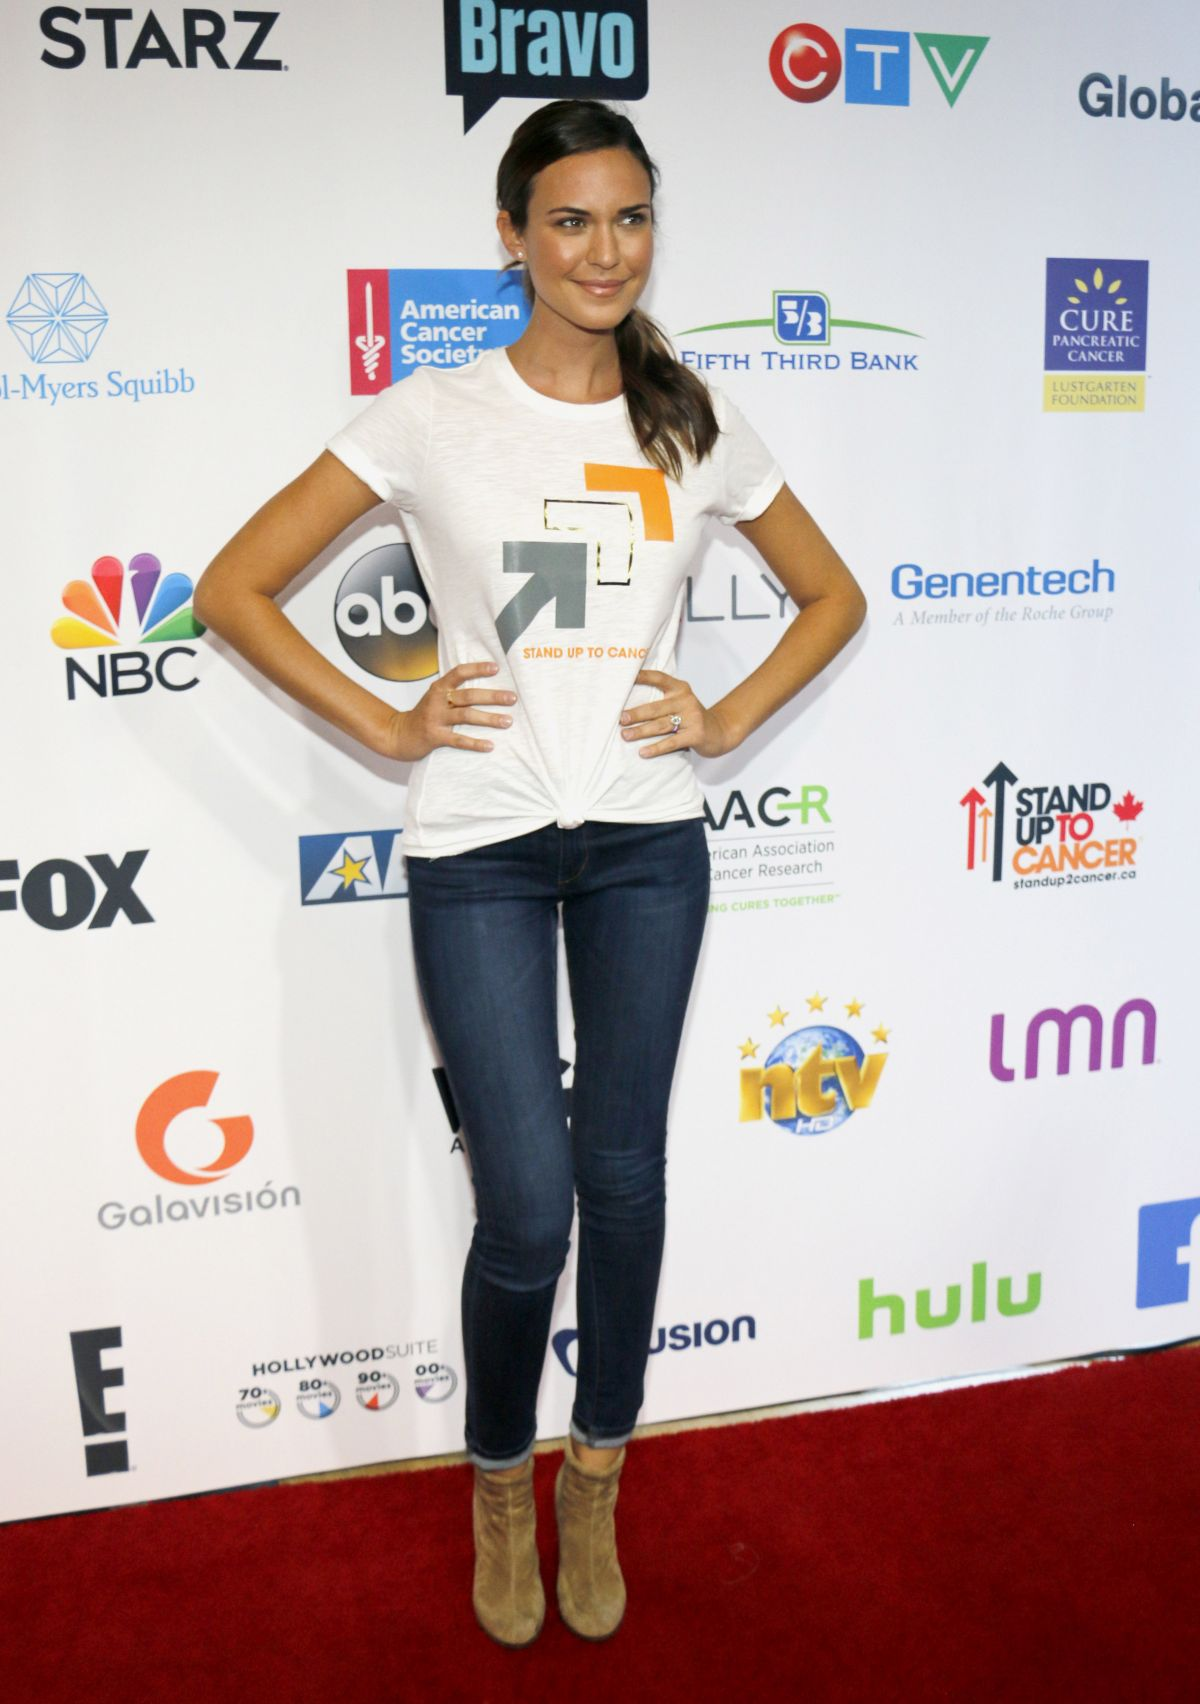 Odette Annable At 5th Biennial Stand Up To Cancer at Walt Disney Concert Hall in Los Angeles, CA   odette-annable-at-5th-biennial-stand-up-to-cancer-at-walt-disney-concert-hall-in-los-angeles-ca_13